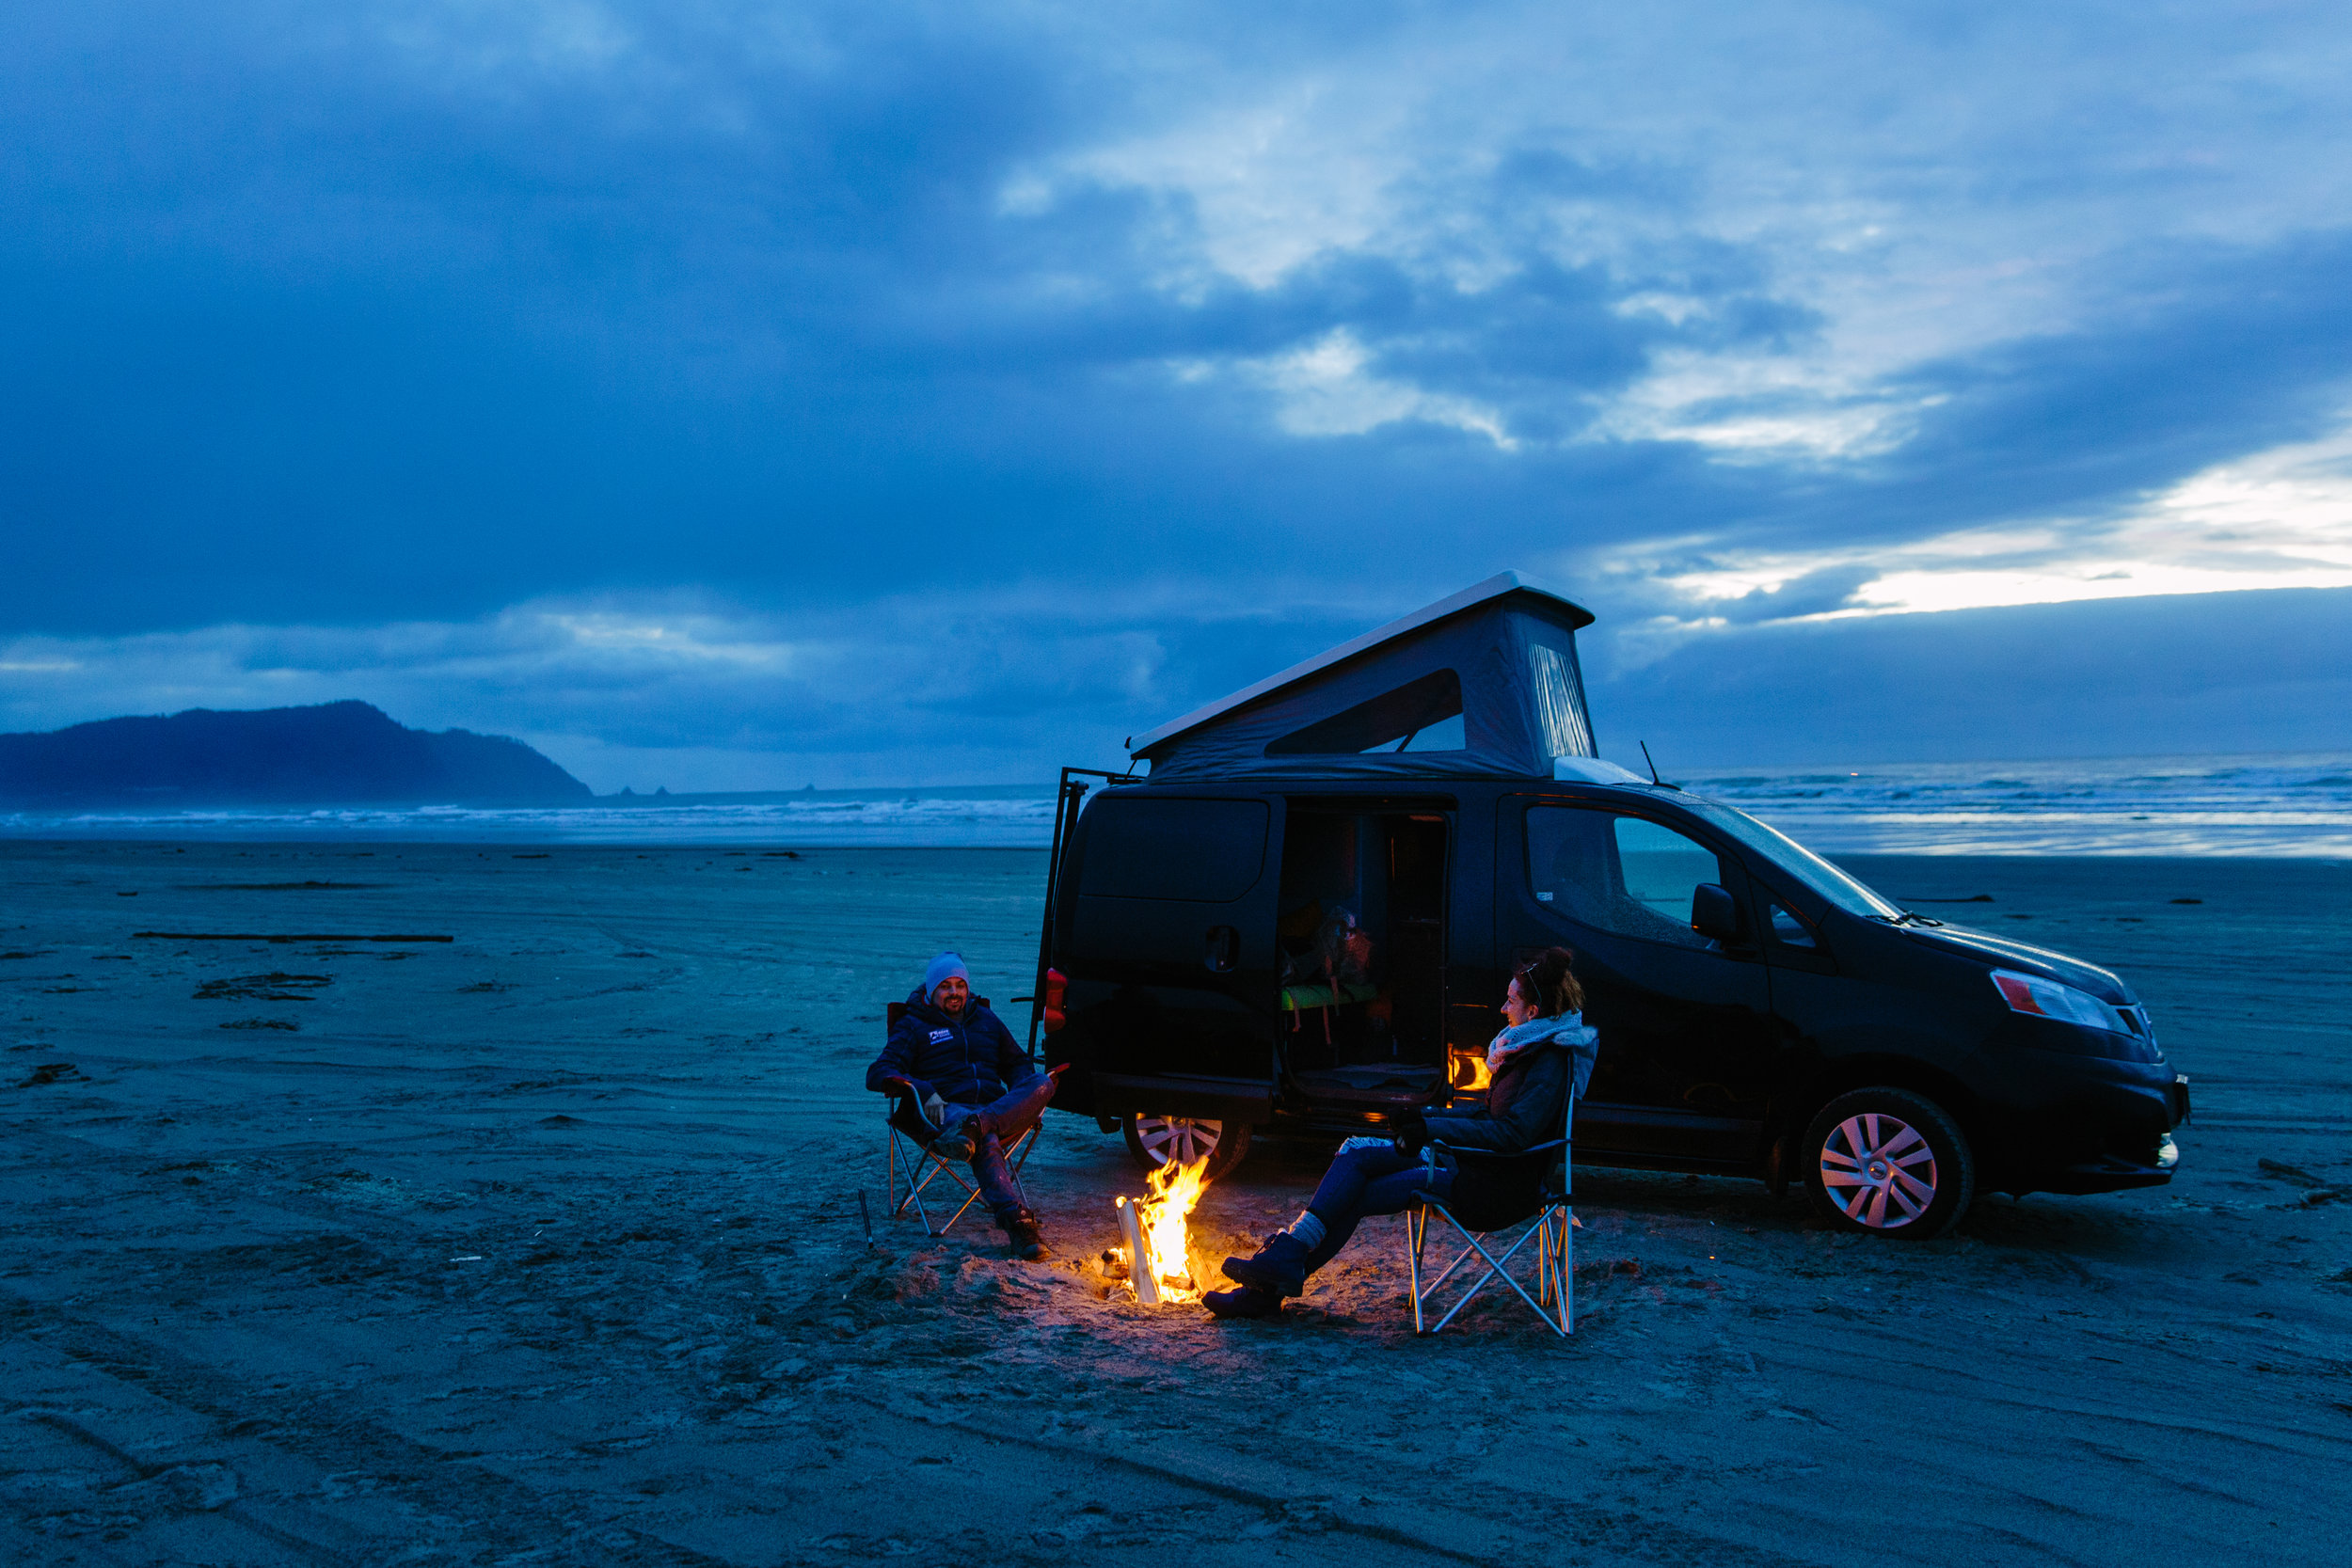 Whether you drive your GoCamp van onto the beach, or just walk over from your campsite, consider an ocean side fire, one of life's great pleasures.